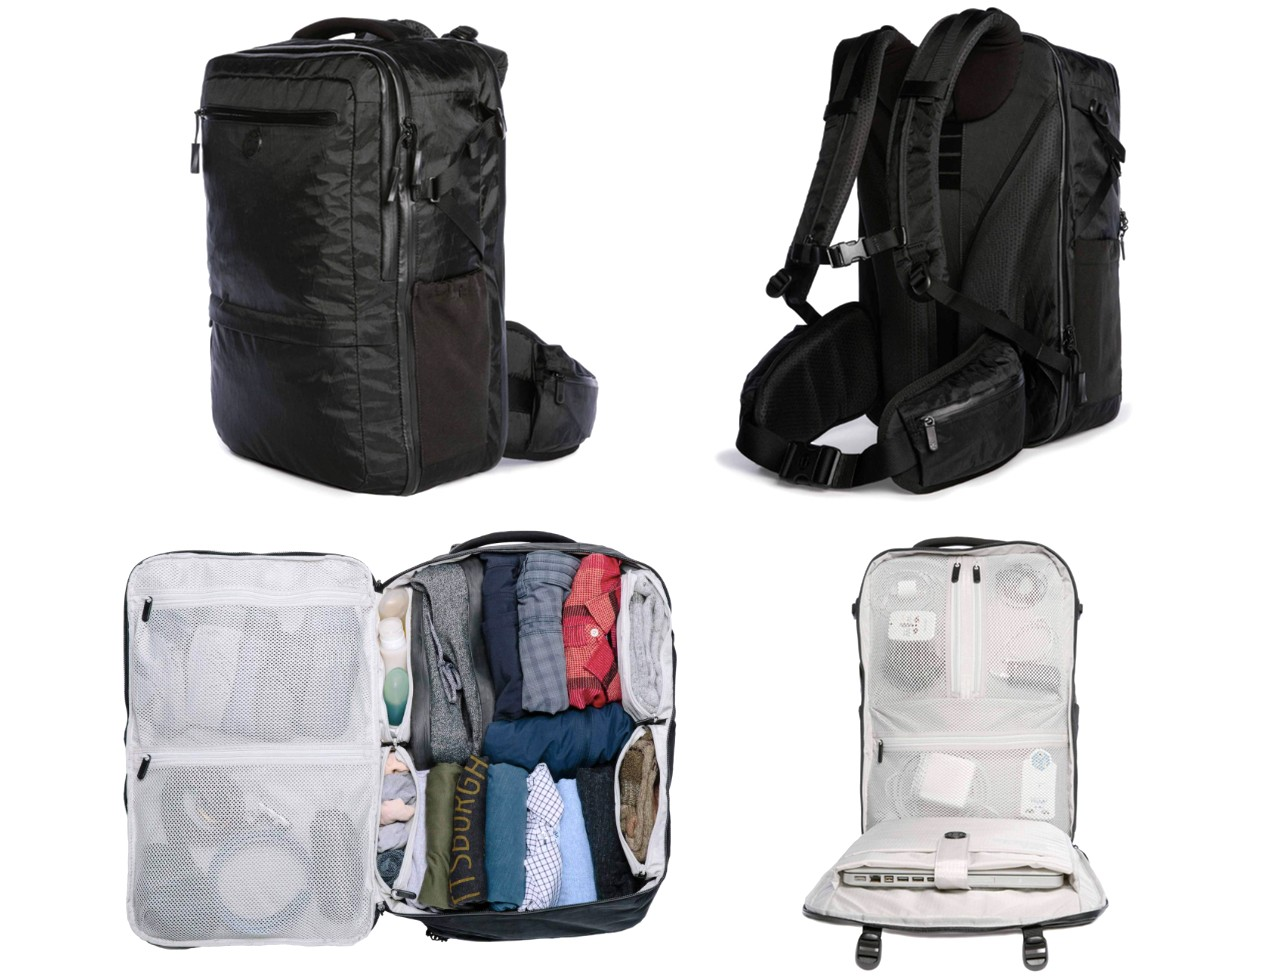 9ade0e3c865a Tortuga Outbreaker Backpack multi-view. Tortuga Outbreaker Backpack  multi-view. You can get ...